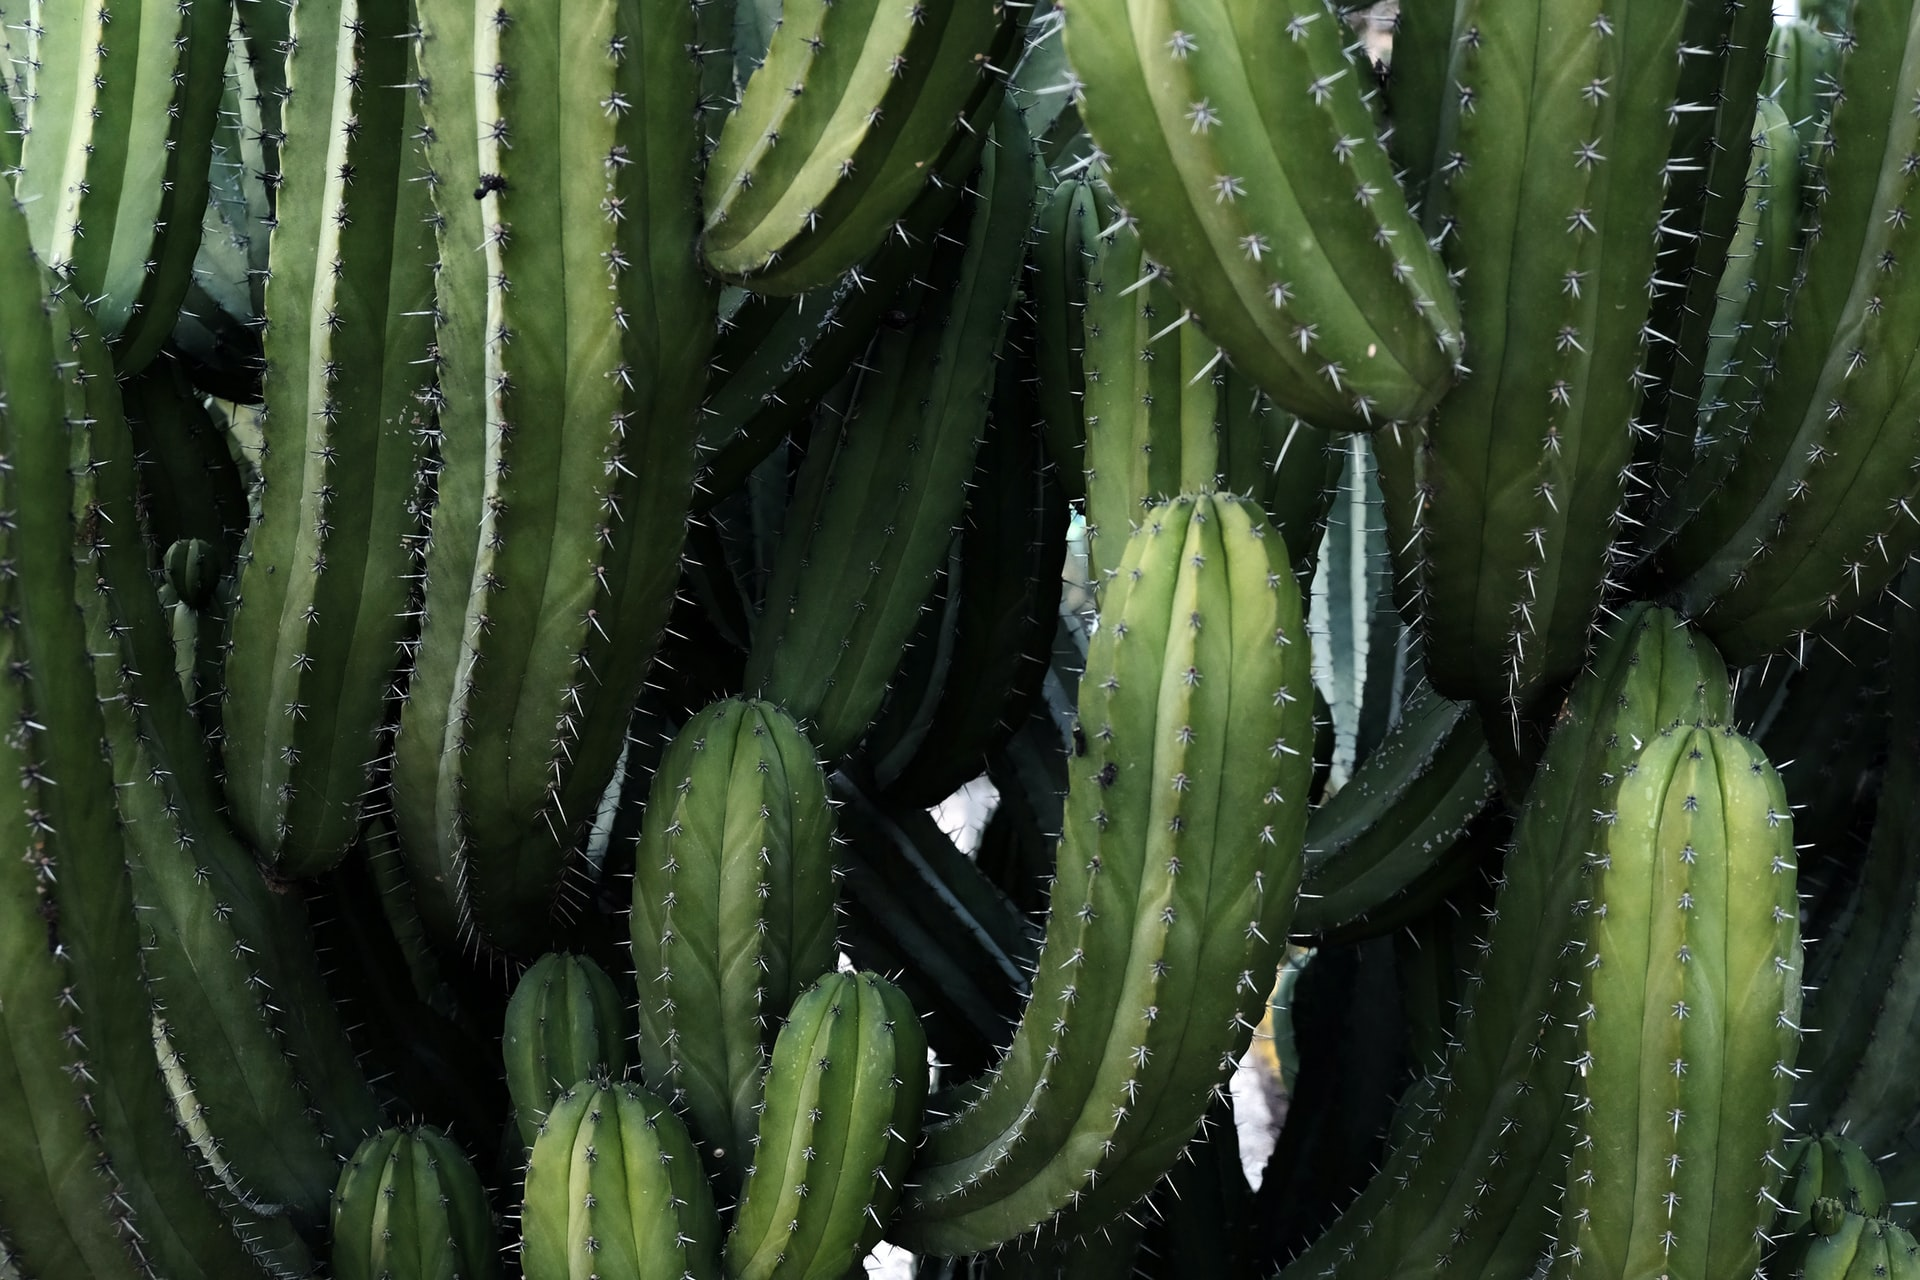 Sharp cactus picture to represent acupuncture in Melbourne